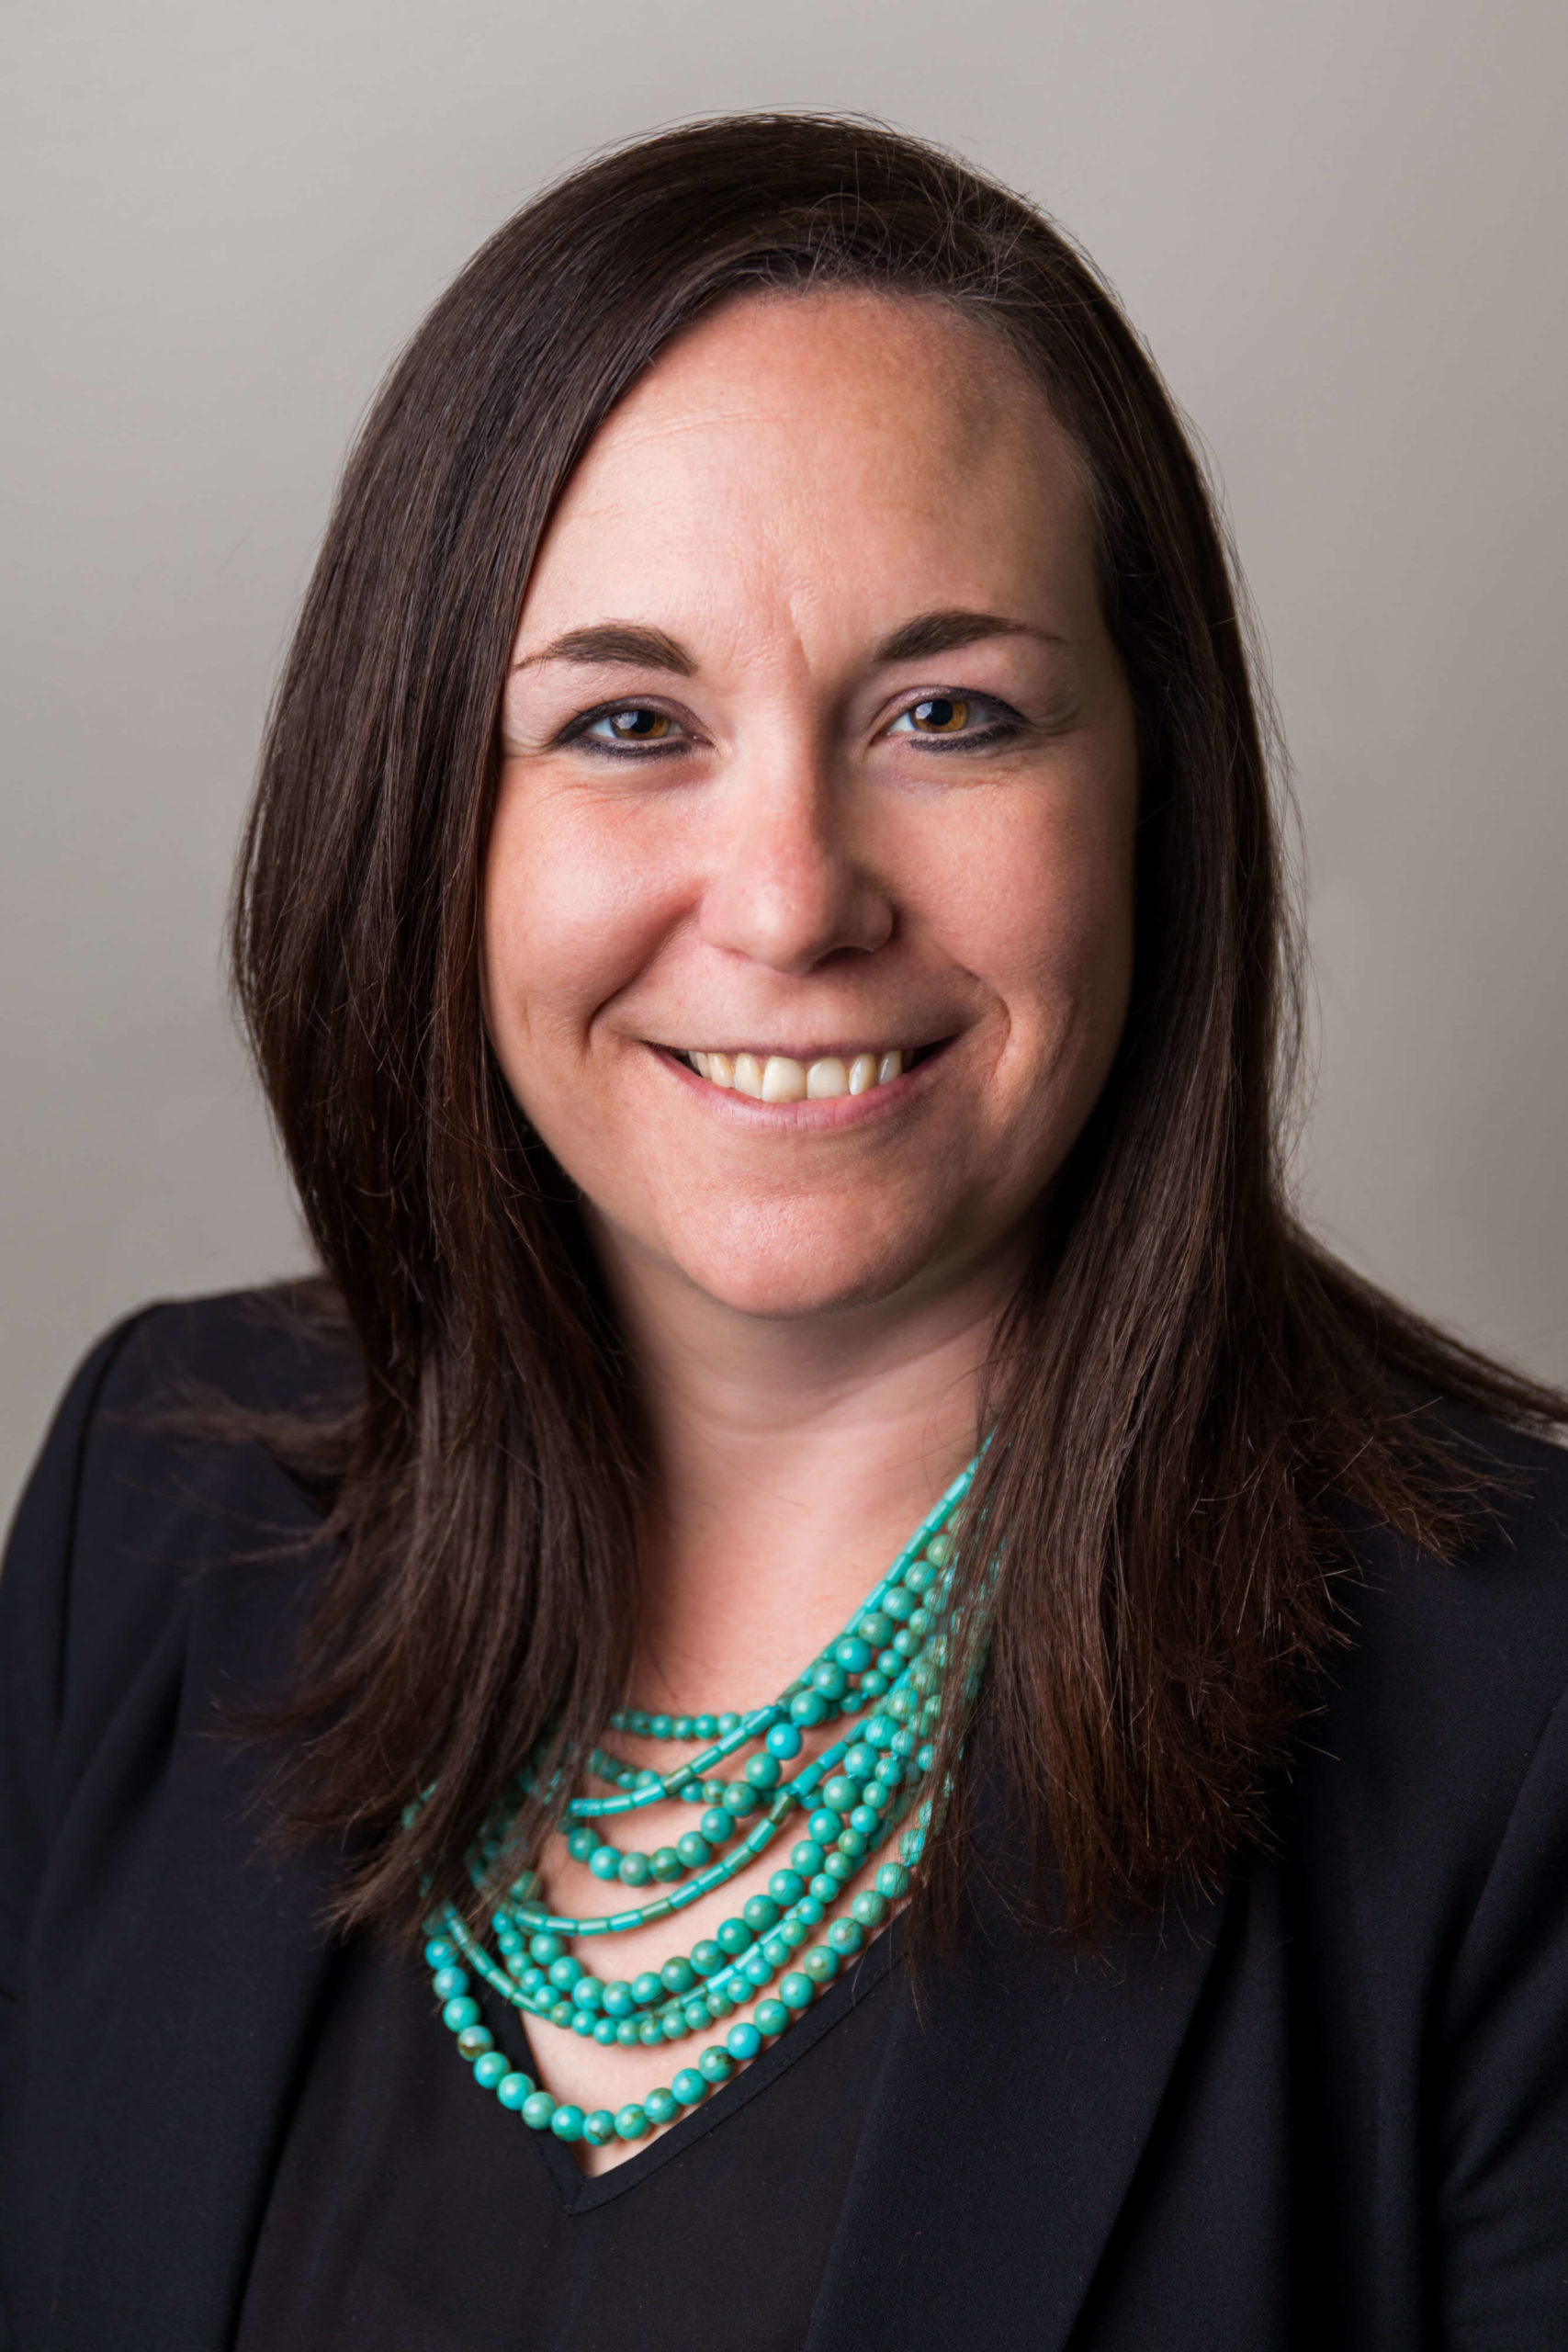 Meghan Phillips, Chief Operating Officer